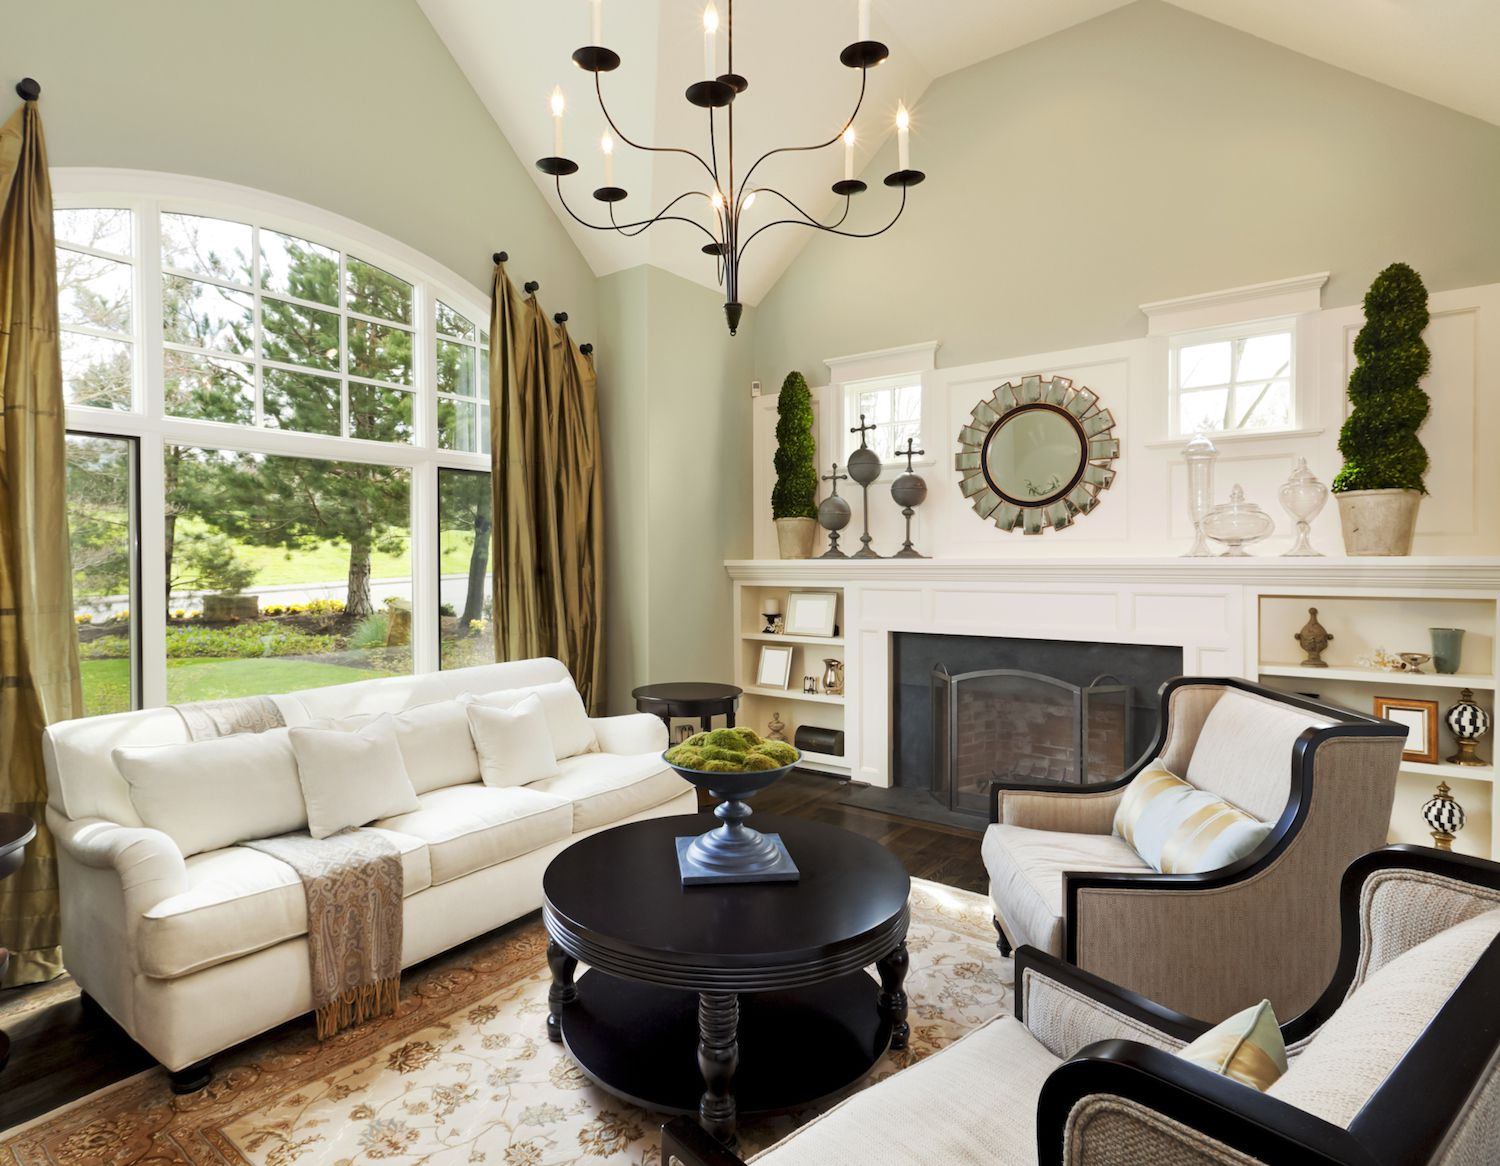 How to stage your open house to appeal to buyers How to furnish small living rooms